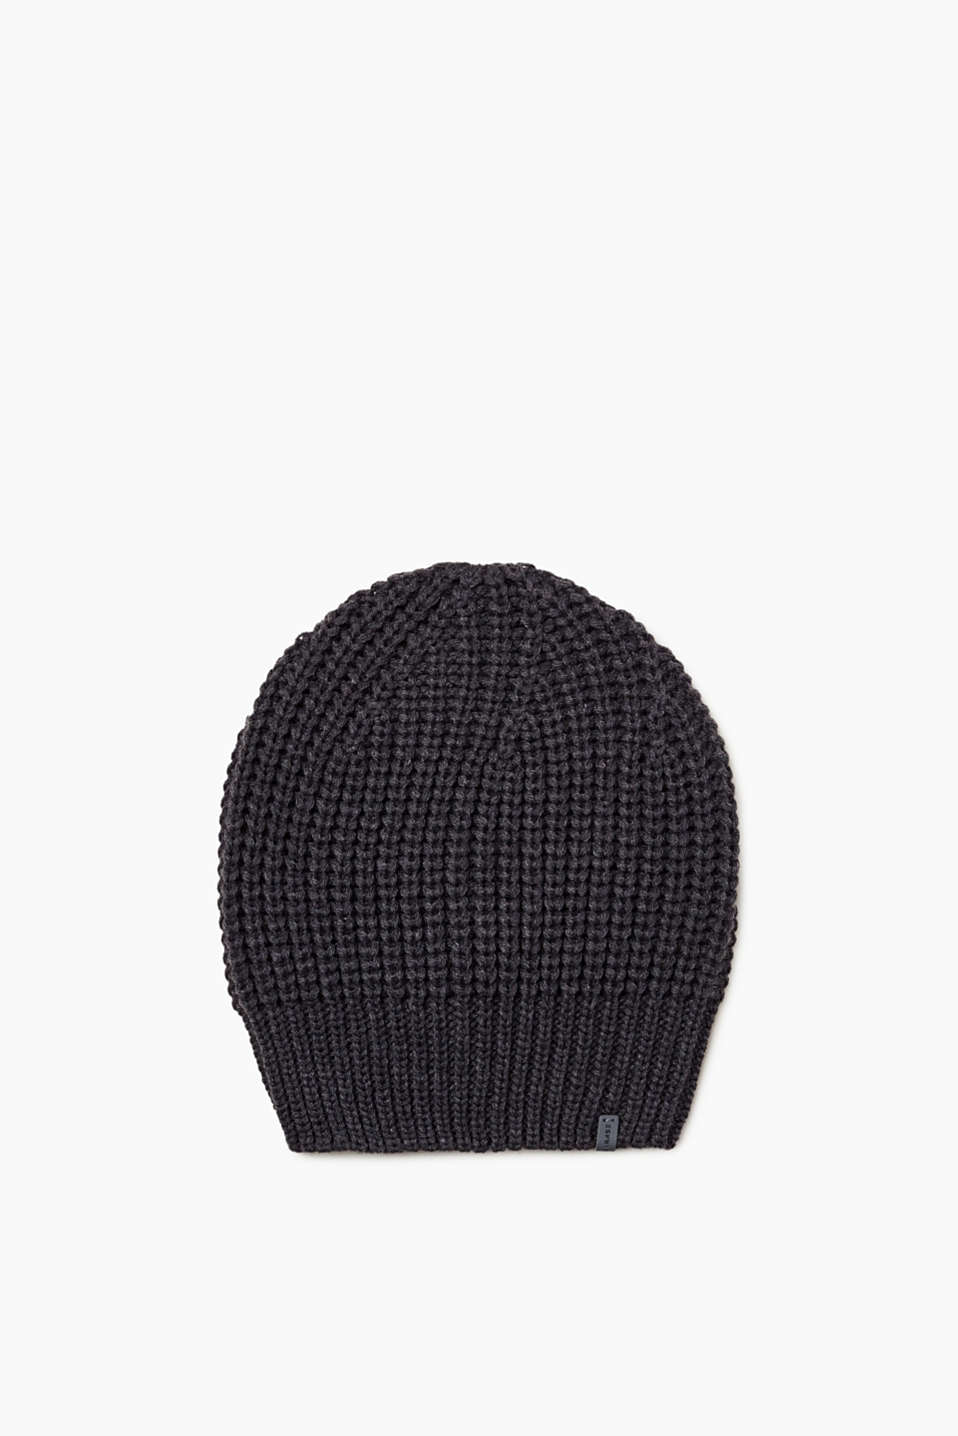 Esprit - High-quality knit beanie